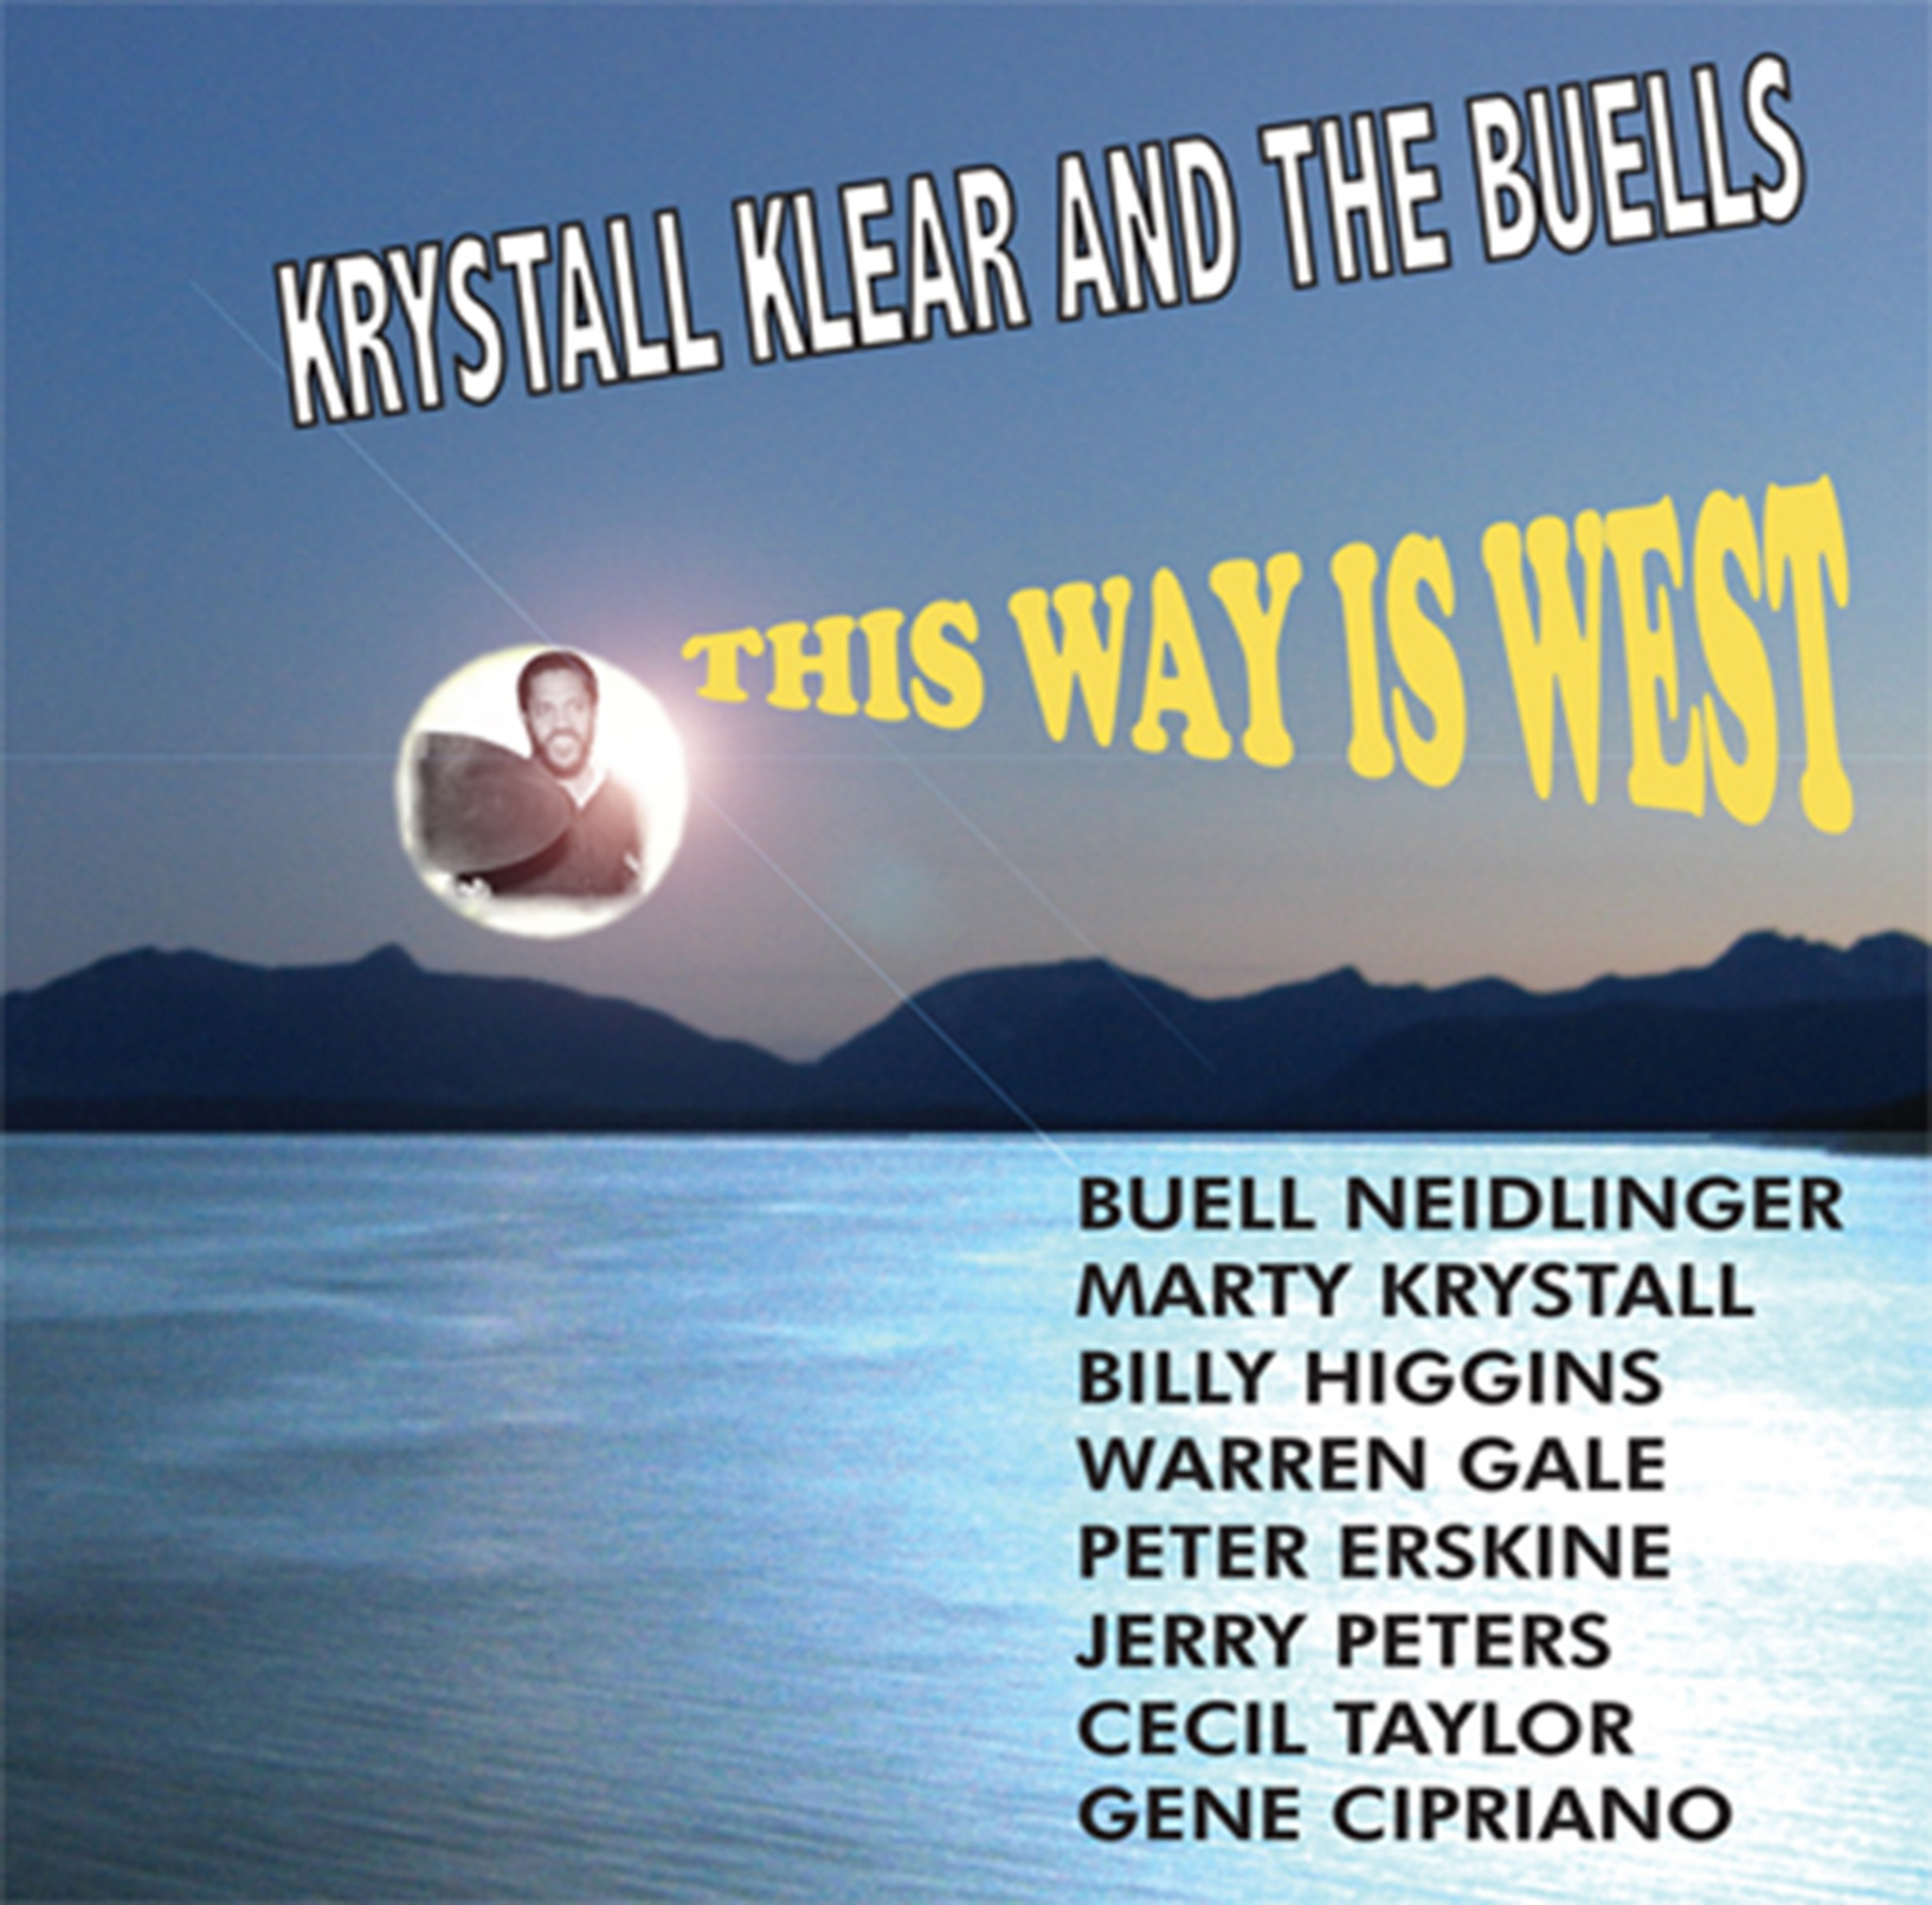 Krystall Klear and the Buells - THIS WAY IS WEST (CD)